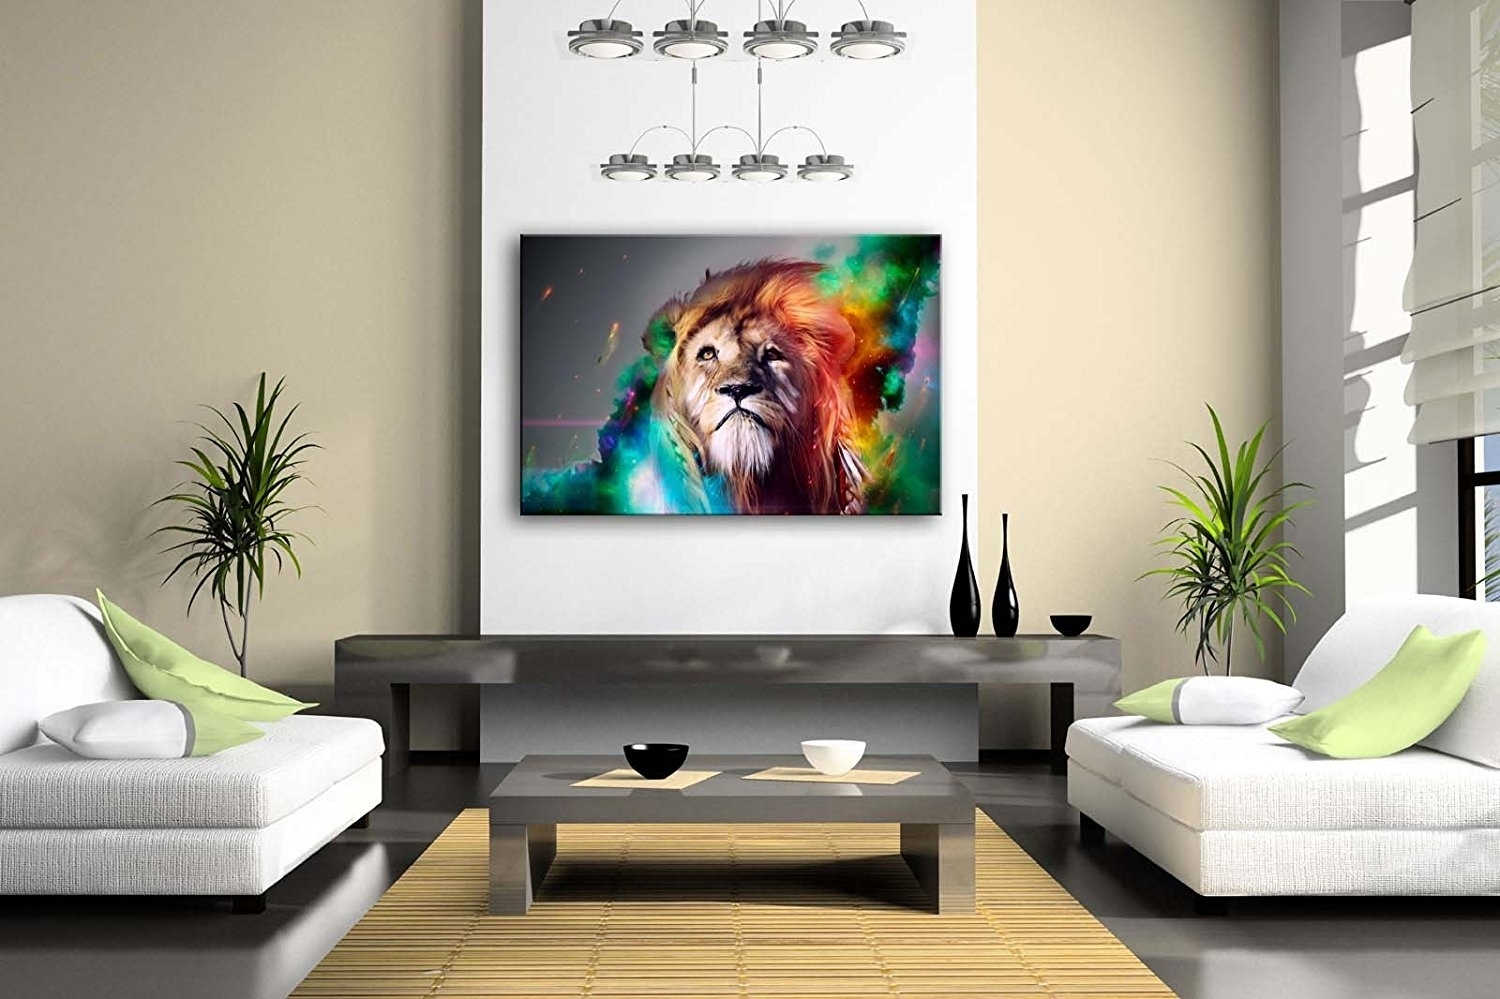 New Wall Art Paintings For Living Room | Wall Decorations Within Current Living Room Painting Wall Art (View 6 of 20)